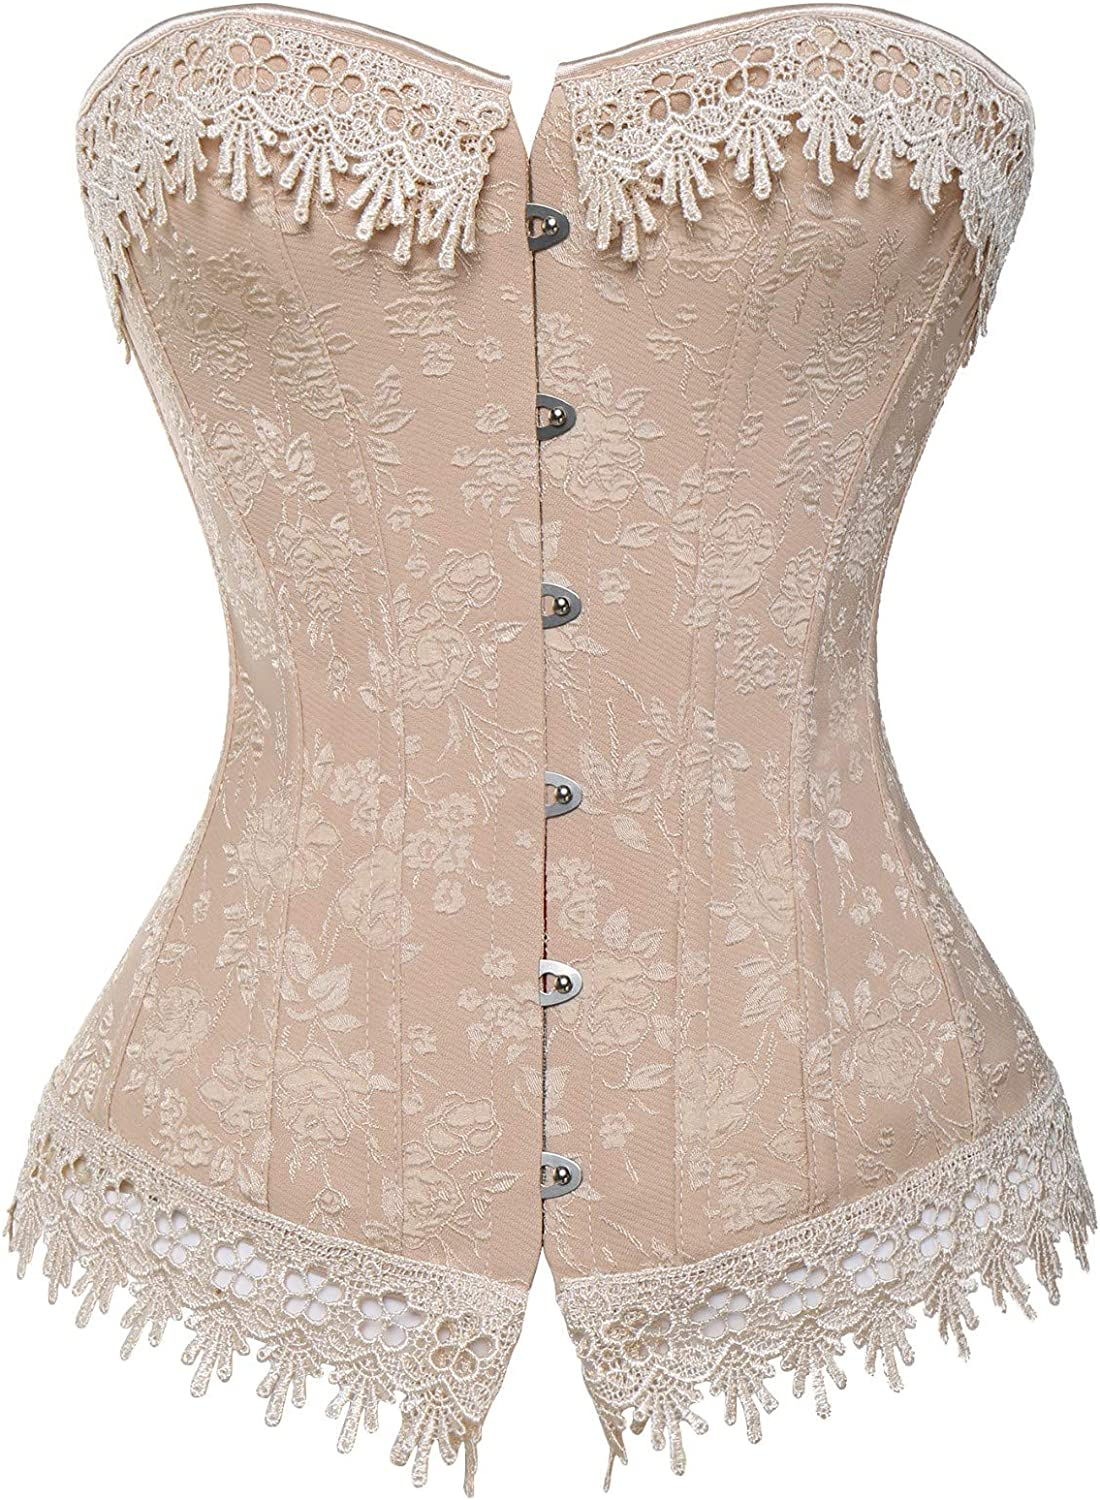 CROSS1946 Sexy Women Corsets Multi-Style Overbust Lace Up Waist